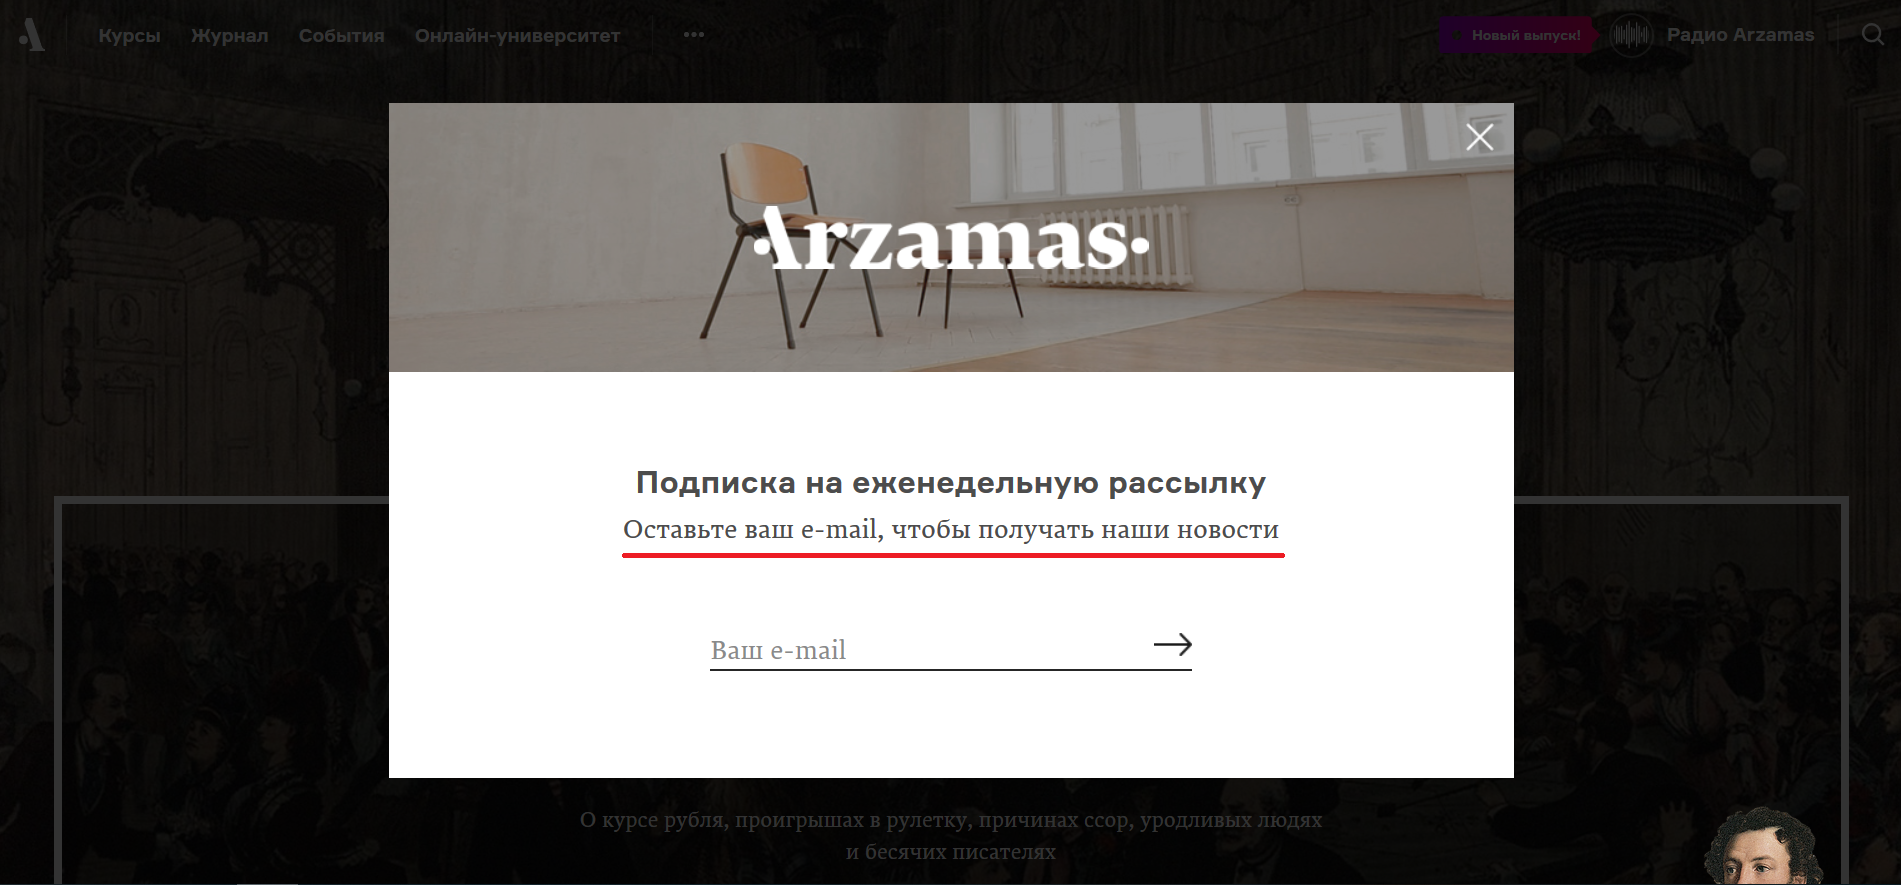 Arzamas subscription form